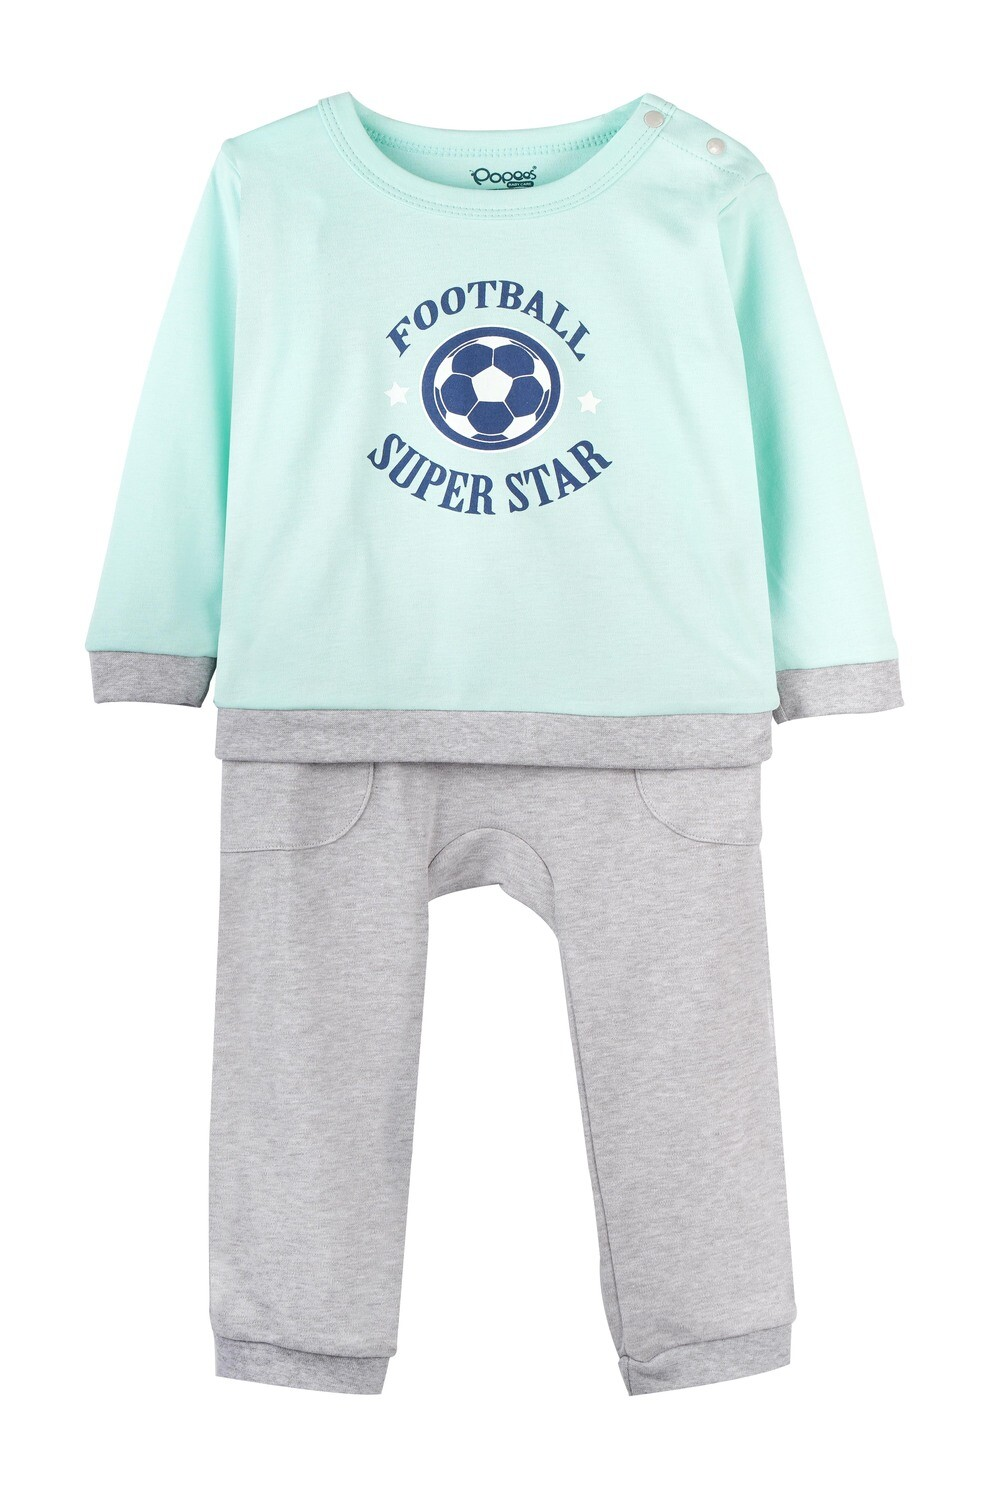 KIRTON YUCCA GREEN Full Sleeve Shoulder Open Top and Pant for Baby Boys